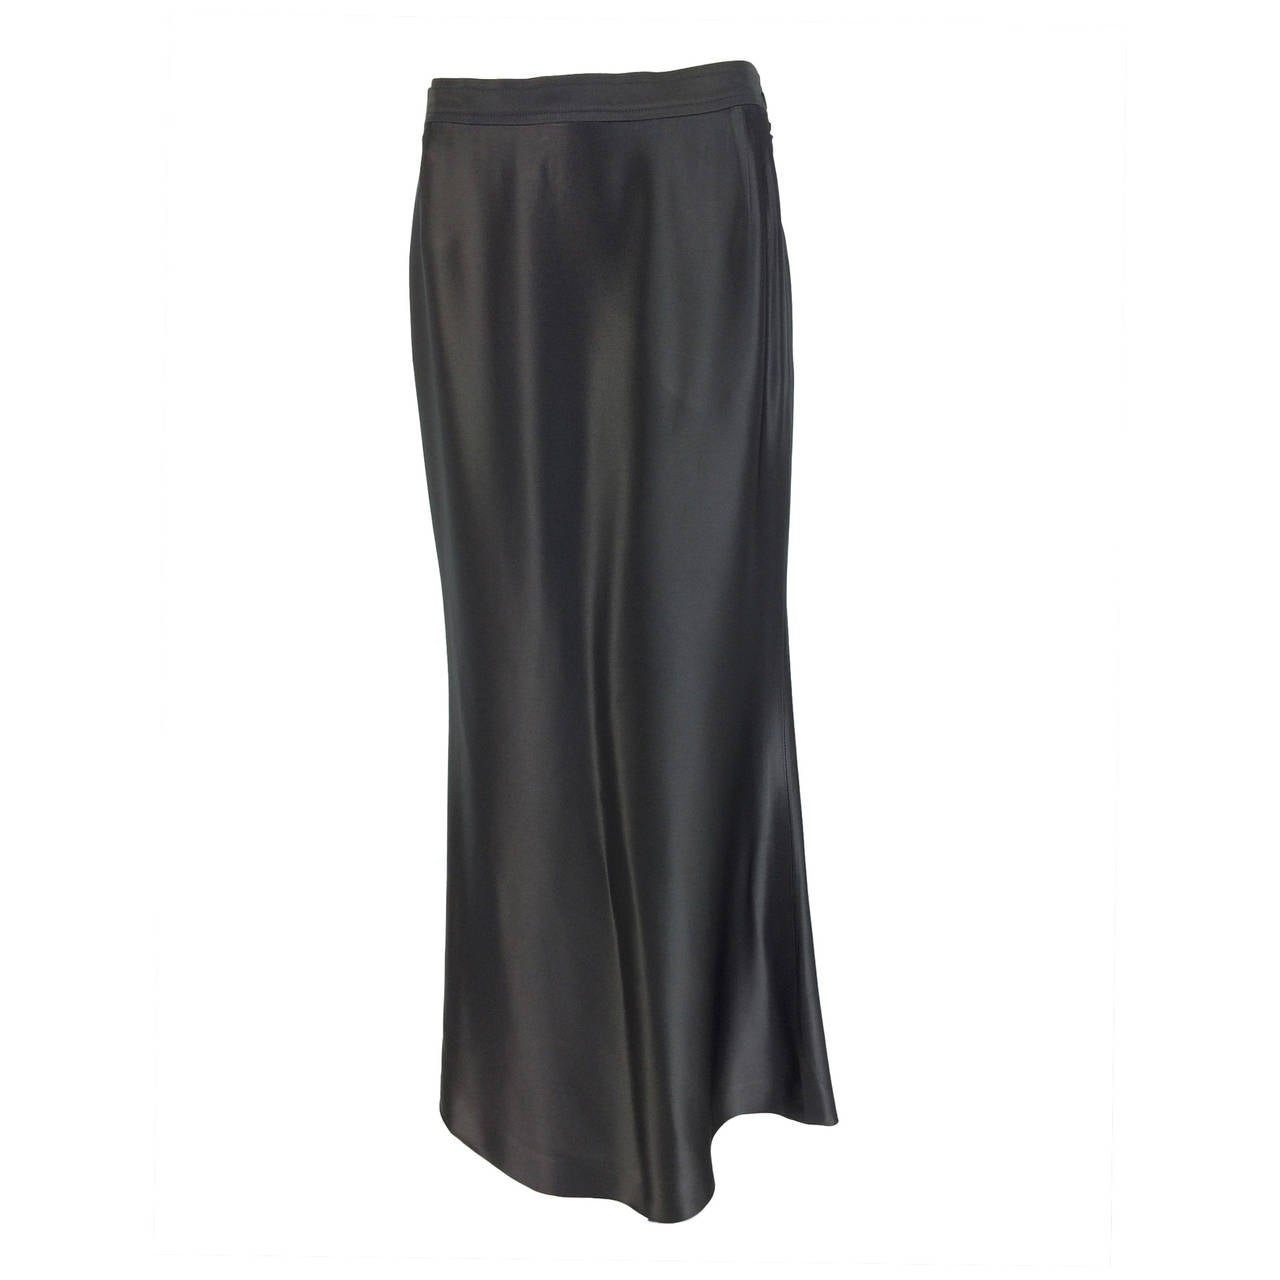 Yves St Laurent Rive Gauche silver grey satin evening skirt 1990s